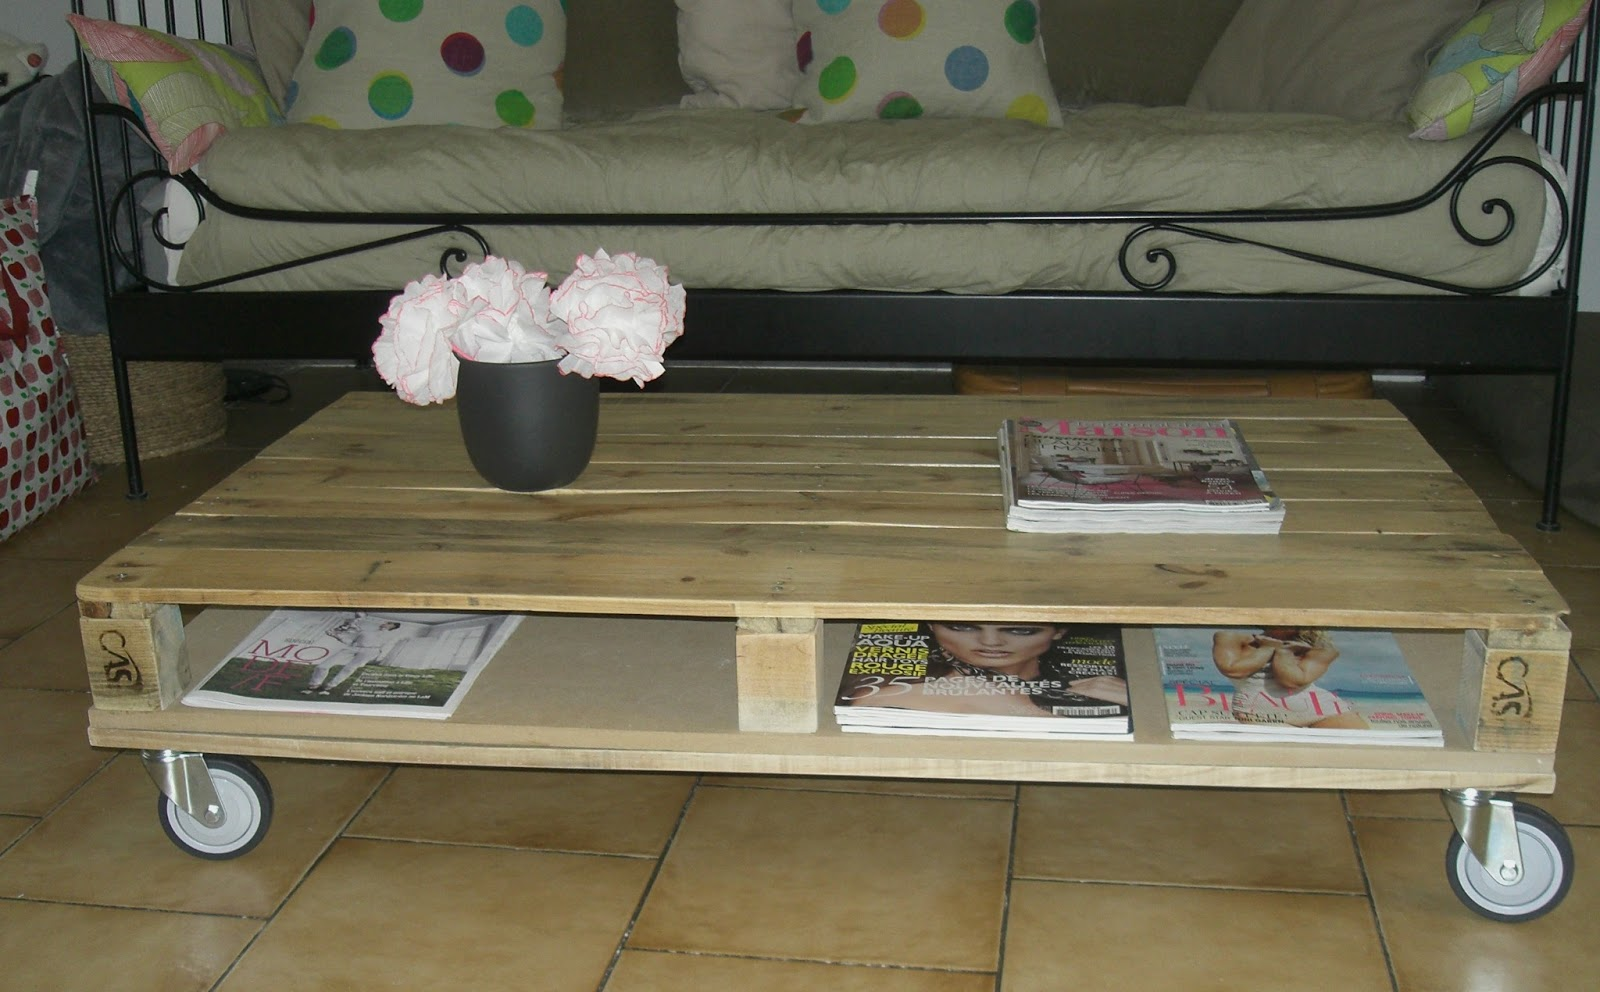 Gabulle in wonderland transformer une palette en table basse - Faire une table basse en palette ...